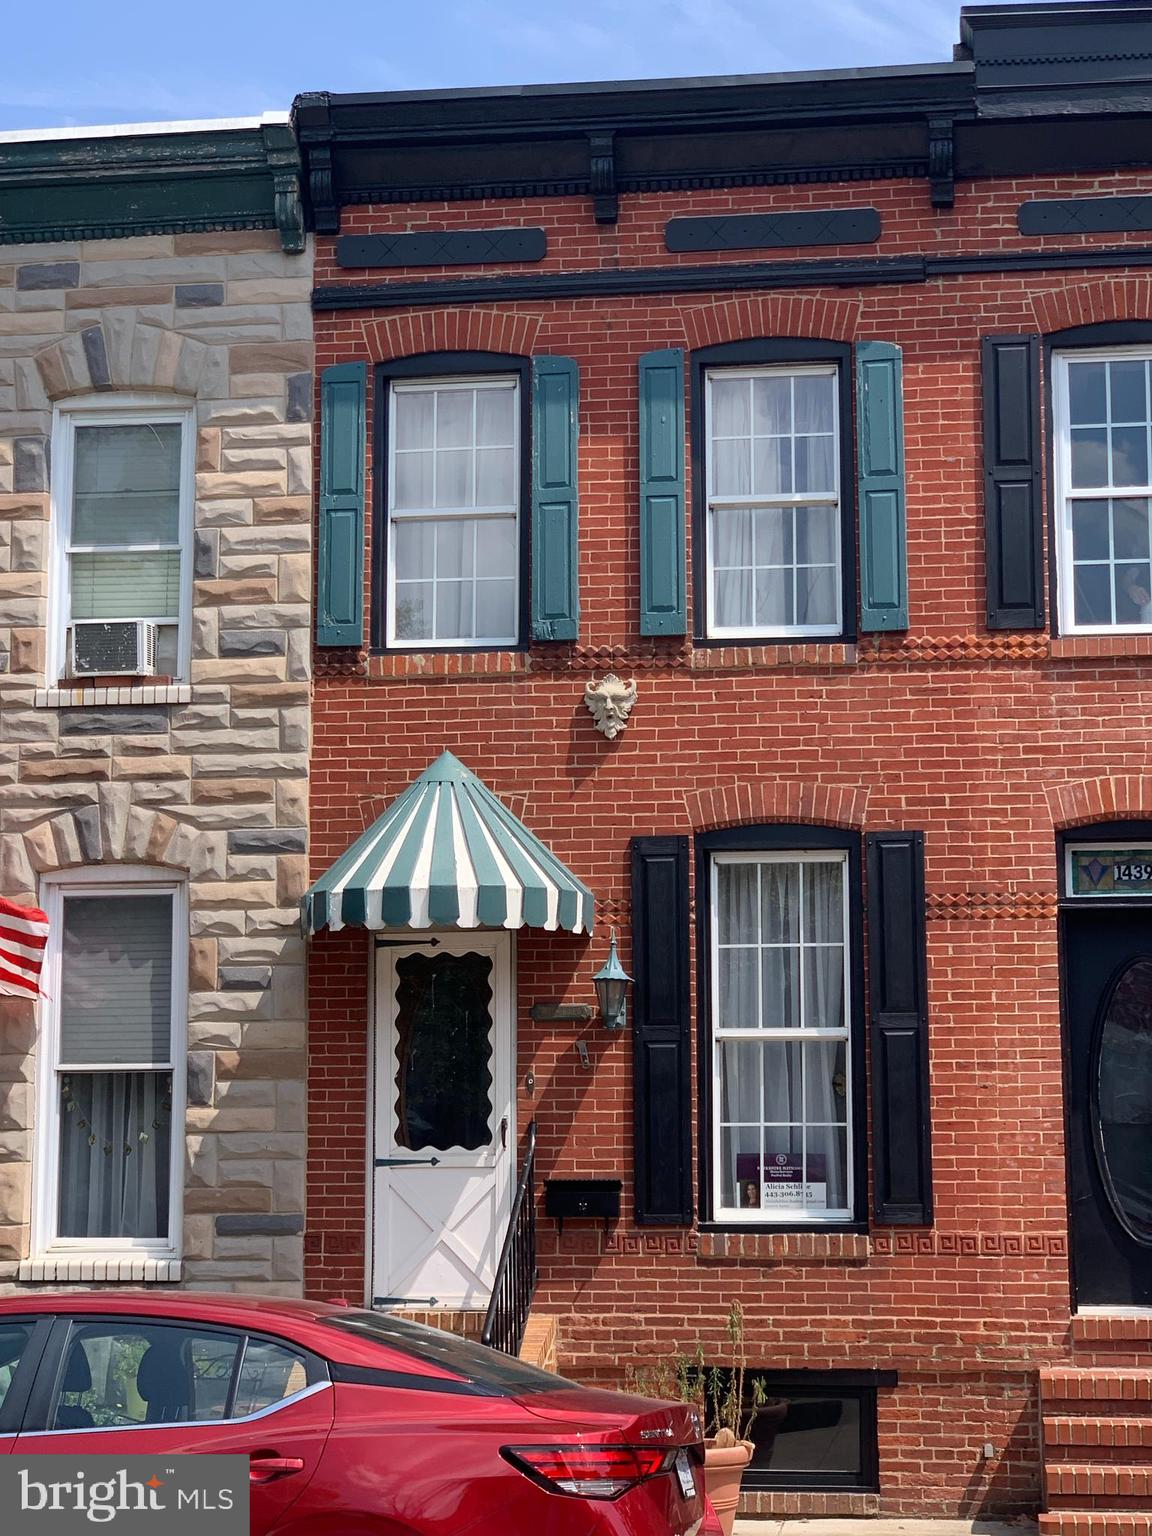 INVESTOR ALERT! Location, Location, Location!!! Locust Point townhome ready for your improvements. Walking distance to Latrobe Park recreation area with baseball & soccer fields, tennis & basketball courts, plus a dog run. Convenient to major routes and public transportation. As-Is.   Imagine this lovely brick townhome finished just the way you want and cute as a button! Spacious kitchen and bedrooms. Have coffee while sitting on the patio or take advantage of the  to all that Baltimore has to offer!